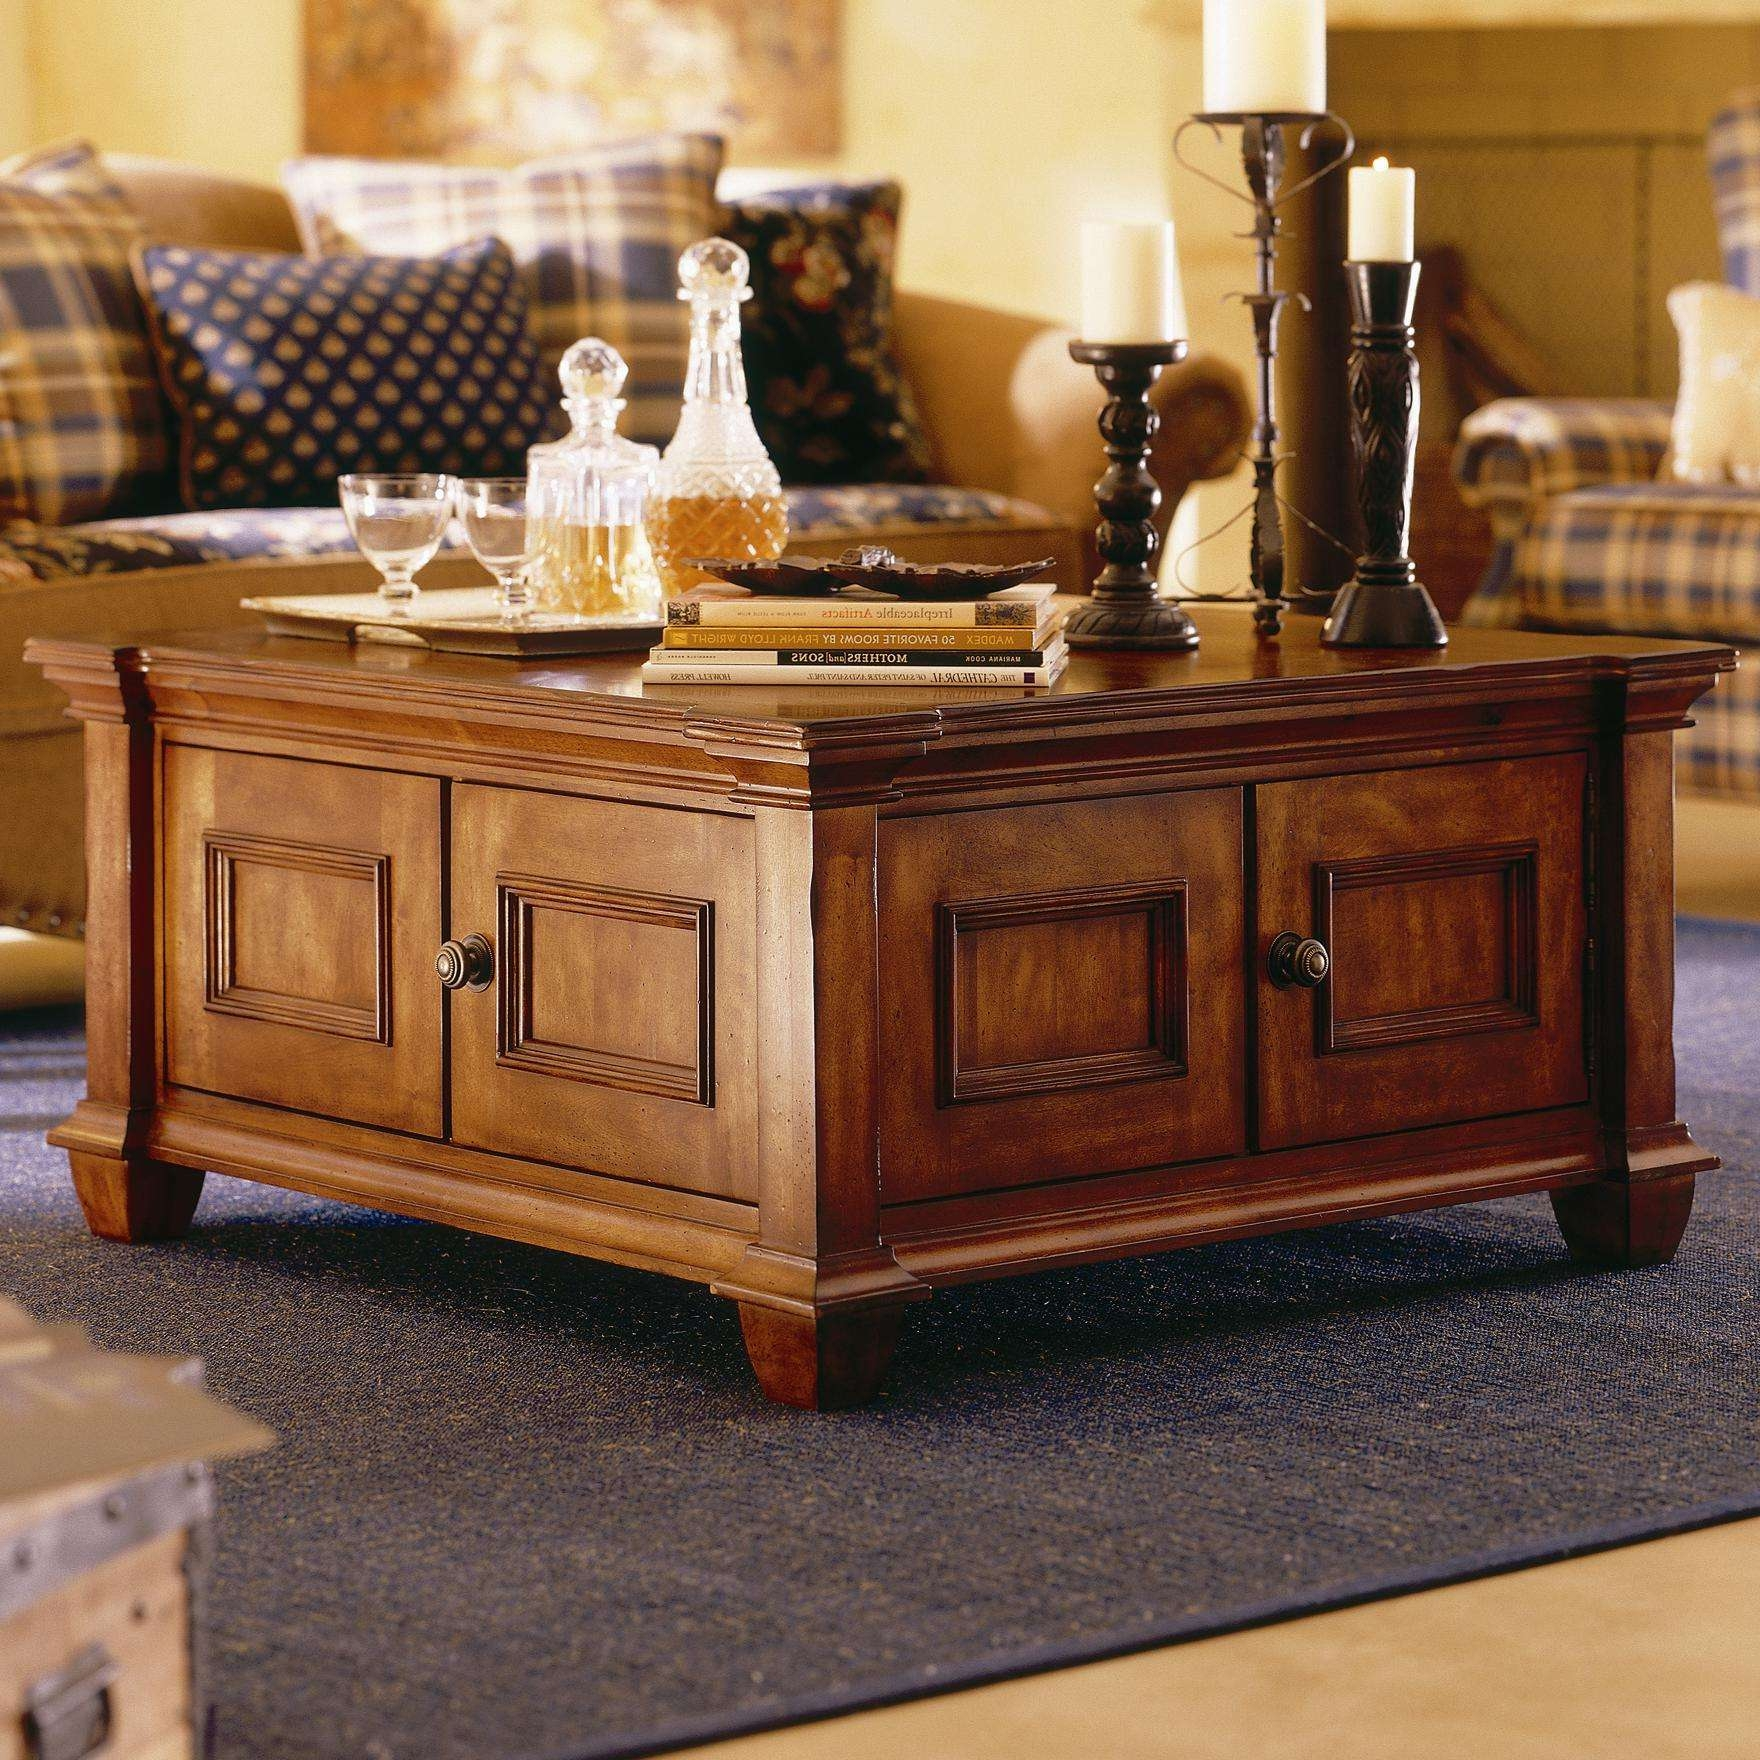 Extra Large Coffee Table With Storage With Outstanding Tuscano Two Pertaining To Fashionable Extra Large Coffee Tables (View 17 of 20)